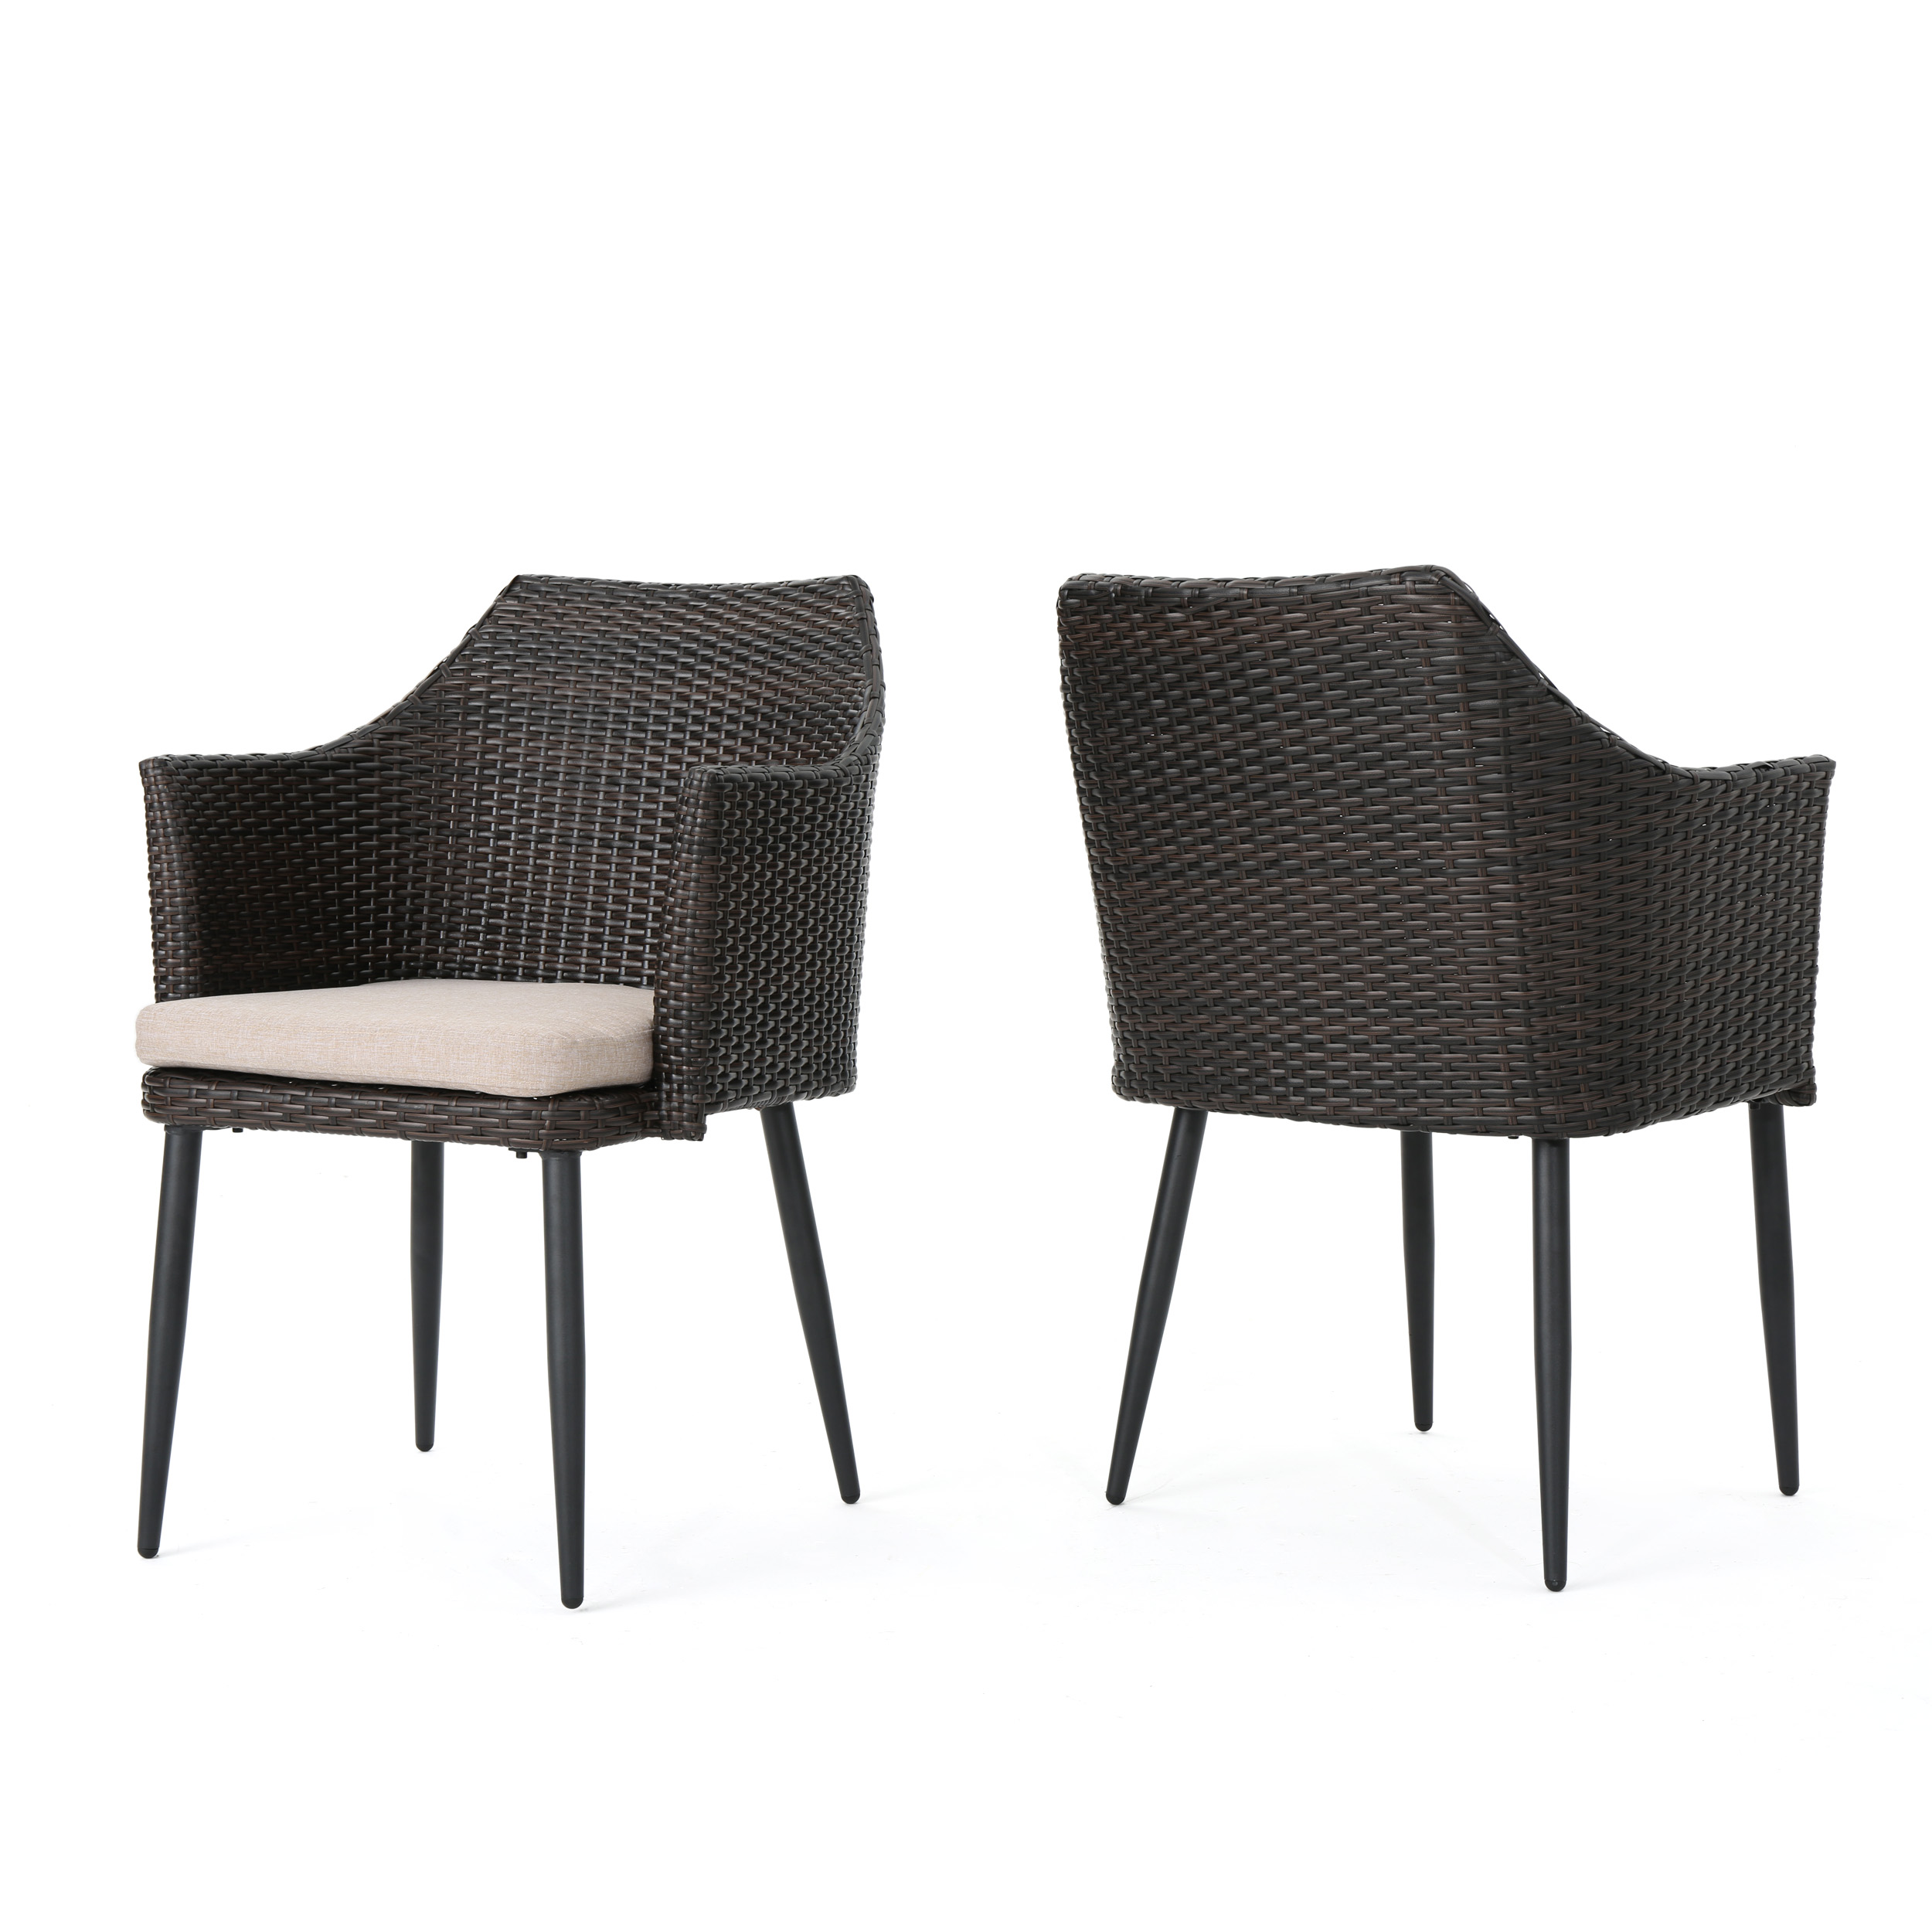 Ibiza Outdoor Multibrown Wicker Dining Chairs with Water Resistant Cushions, Set of 2, Textured Beige